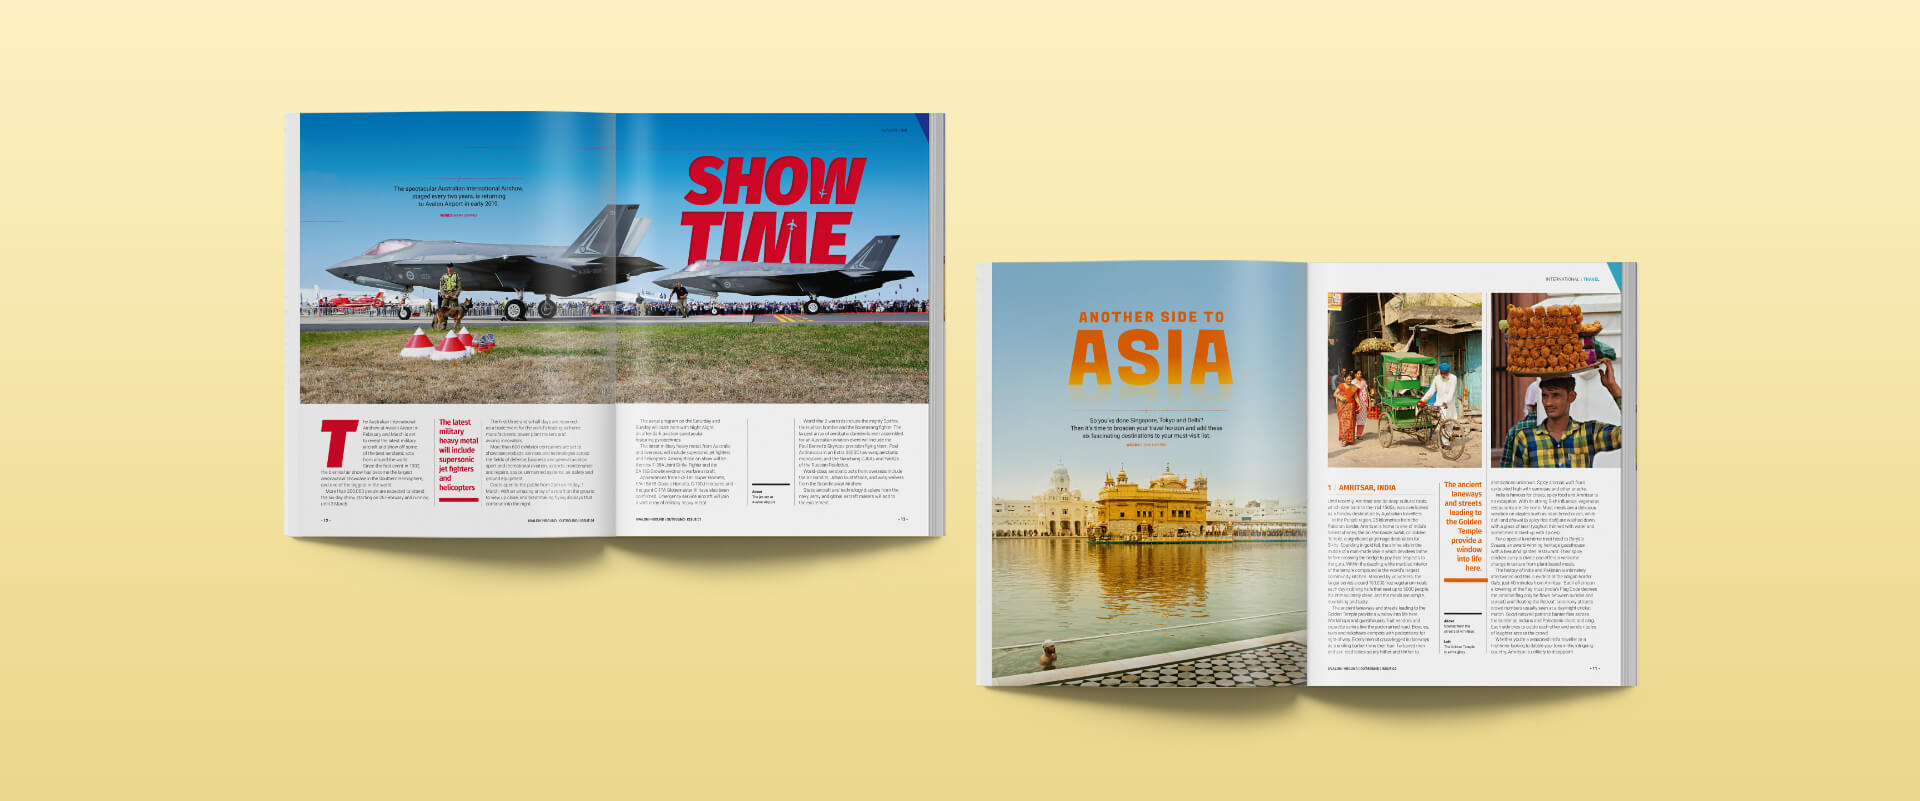 Avalon Inbound Outbound Travel and Lifestyle Magazine spreads